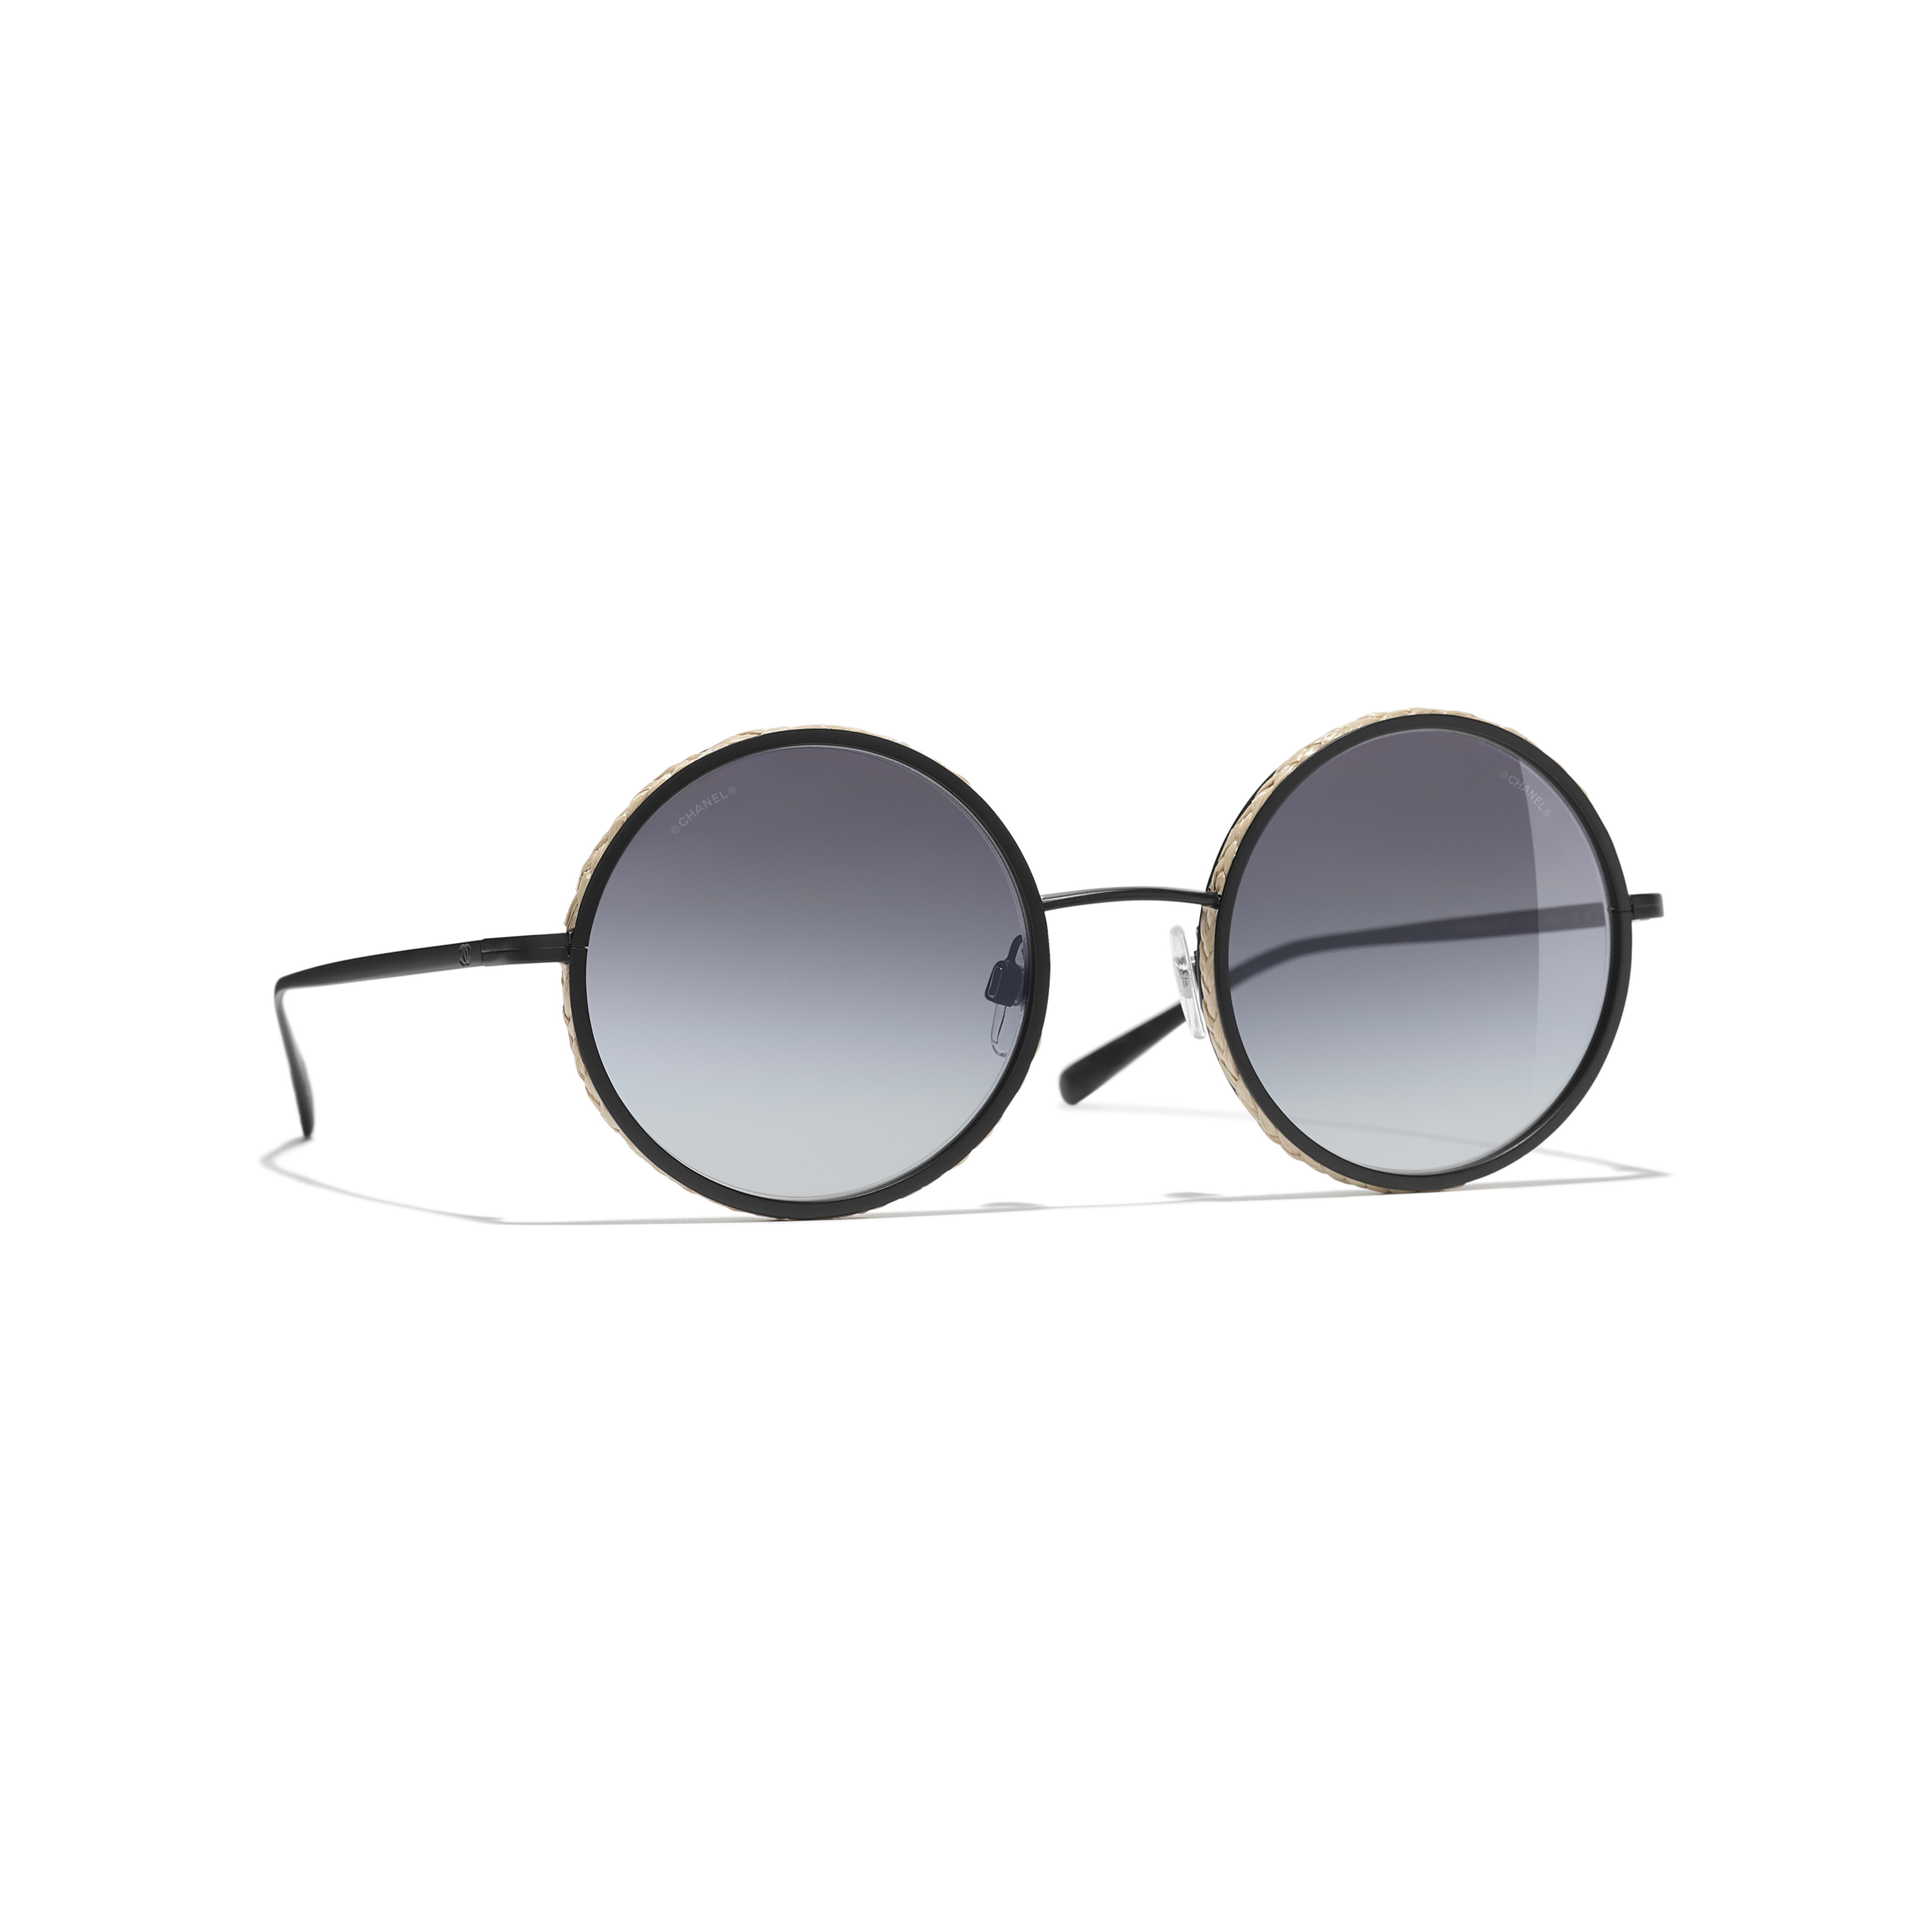 Round Sunglasses - Black - Metal & Rope - Default view - see standard sized version